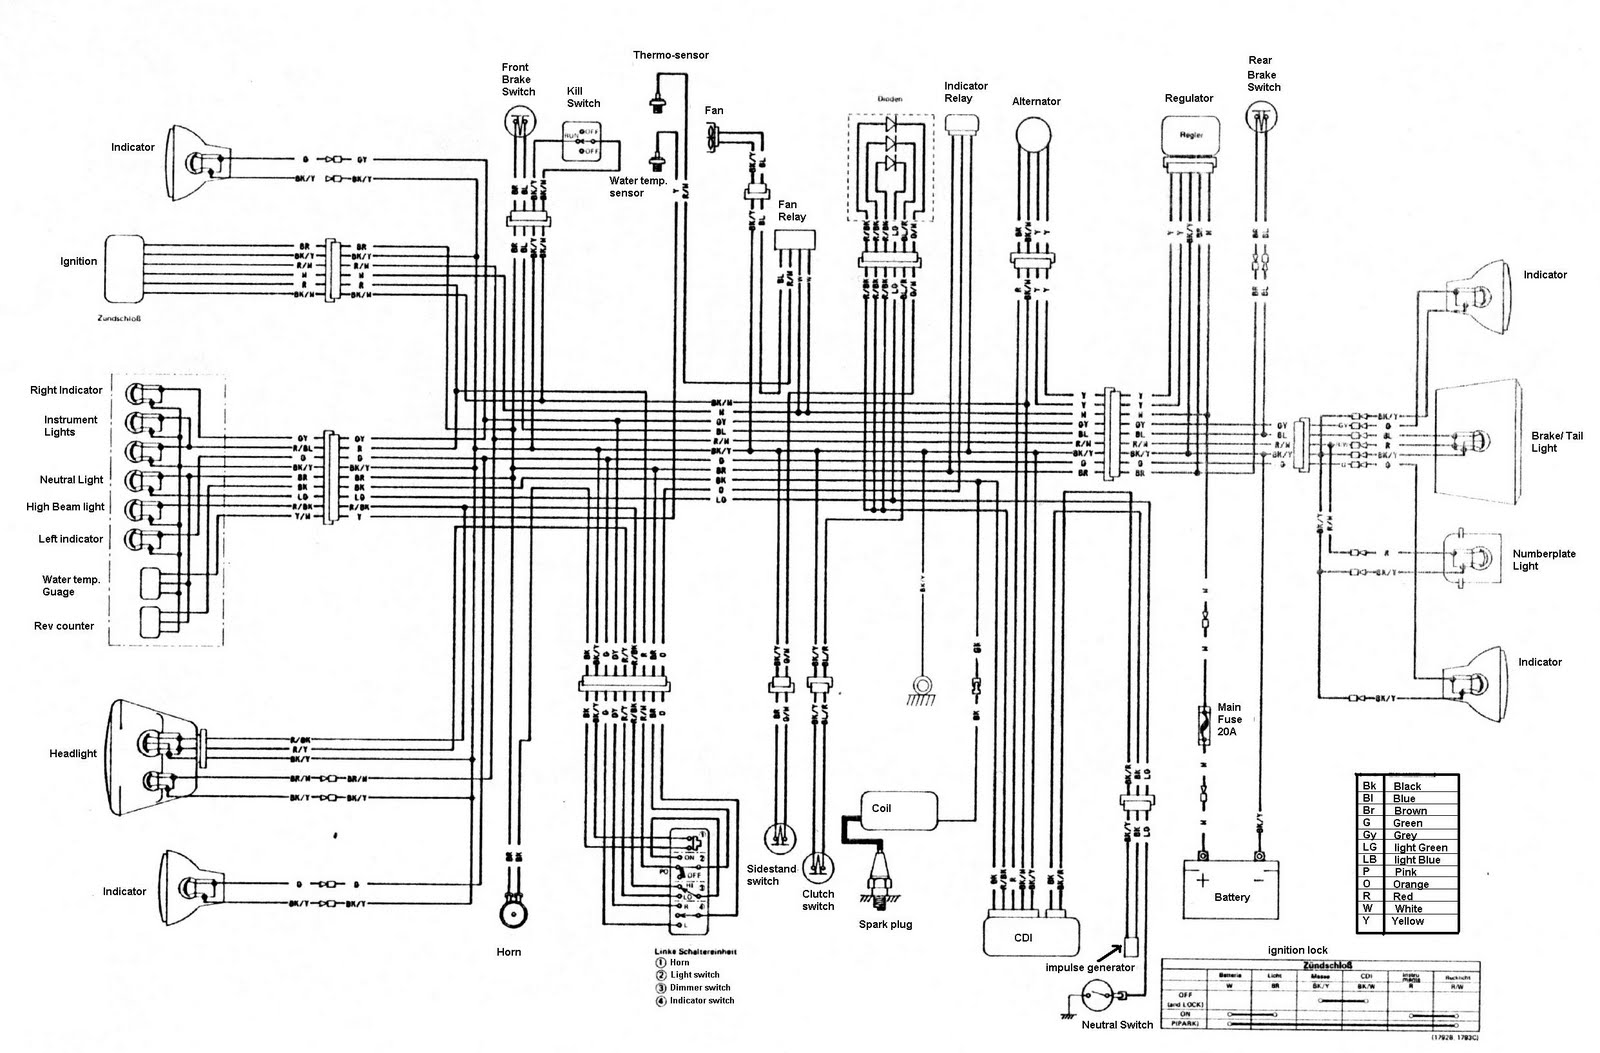 klr250d 2005 klr 650 wiring diagram klr 650 ignition wiring \u2022 wiring EX500 Connector Picture at fashall.co